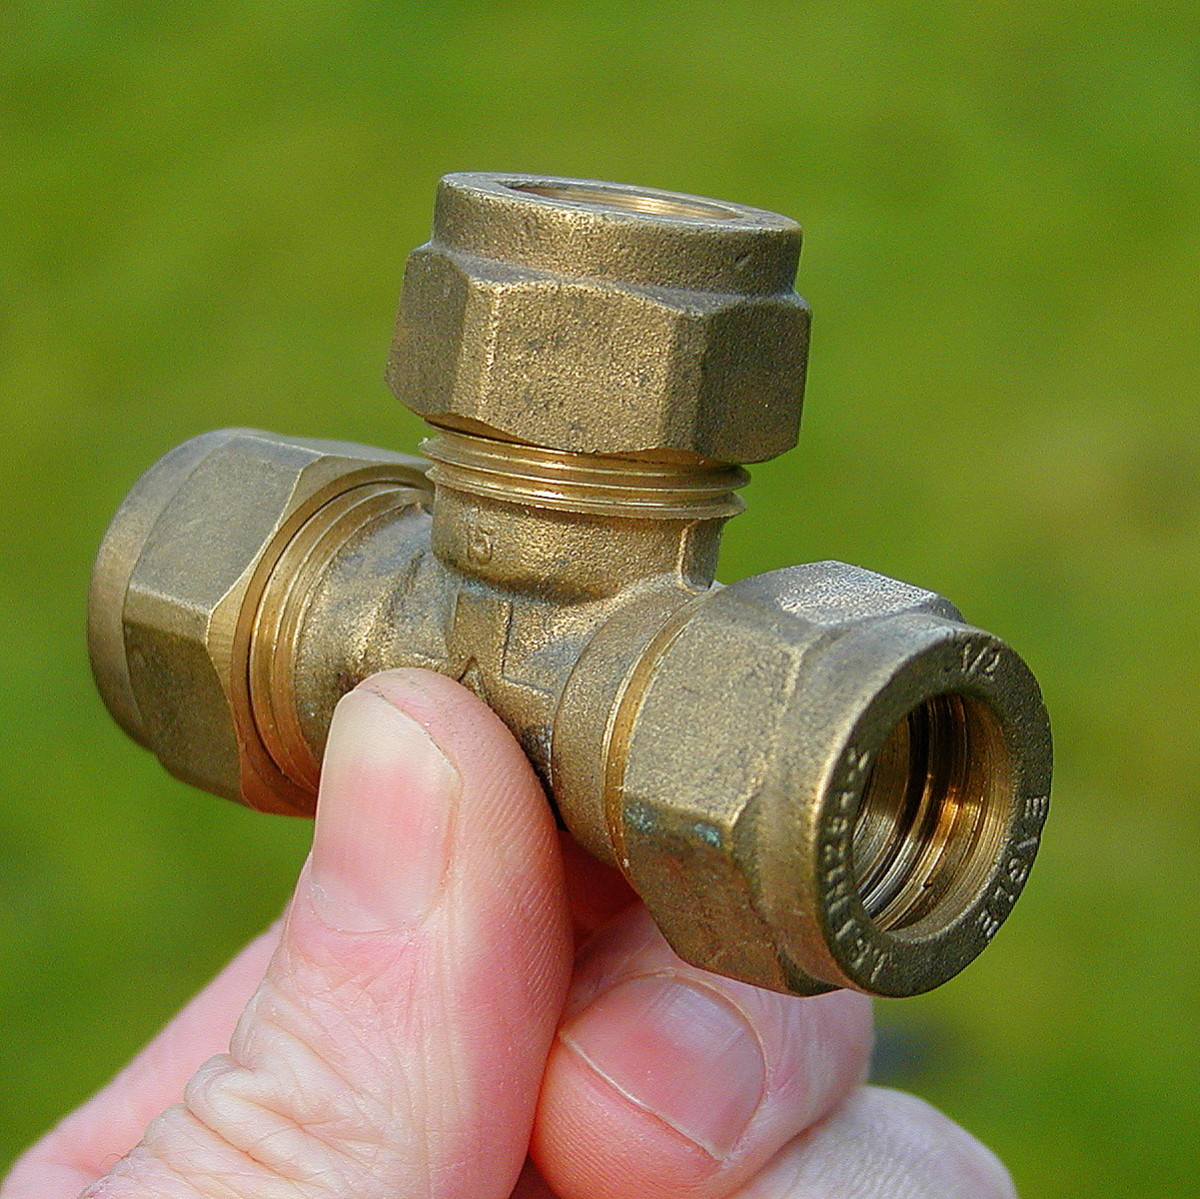 A Complete Guide to Using Plumbing Fittings for Joining PVC, PEX, & Copper Pipe